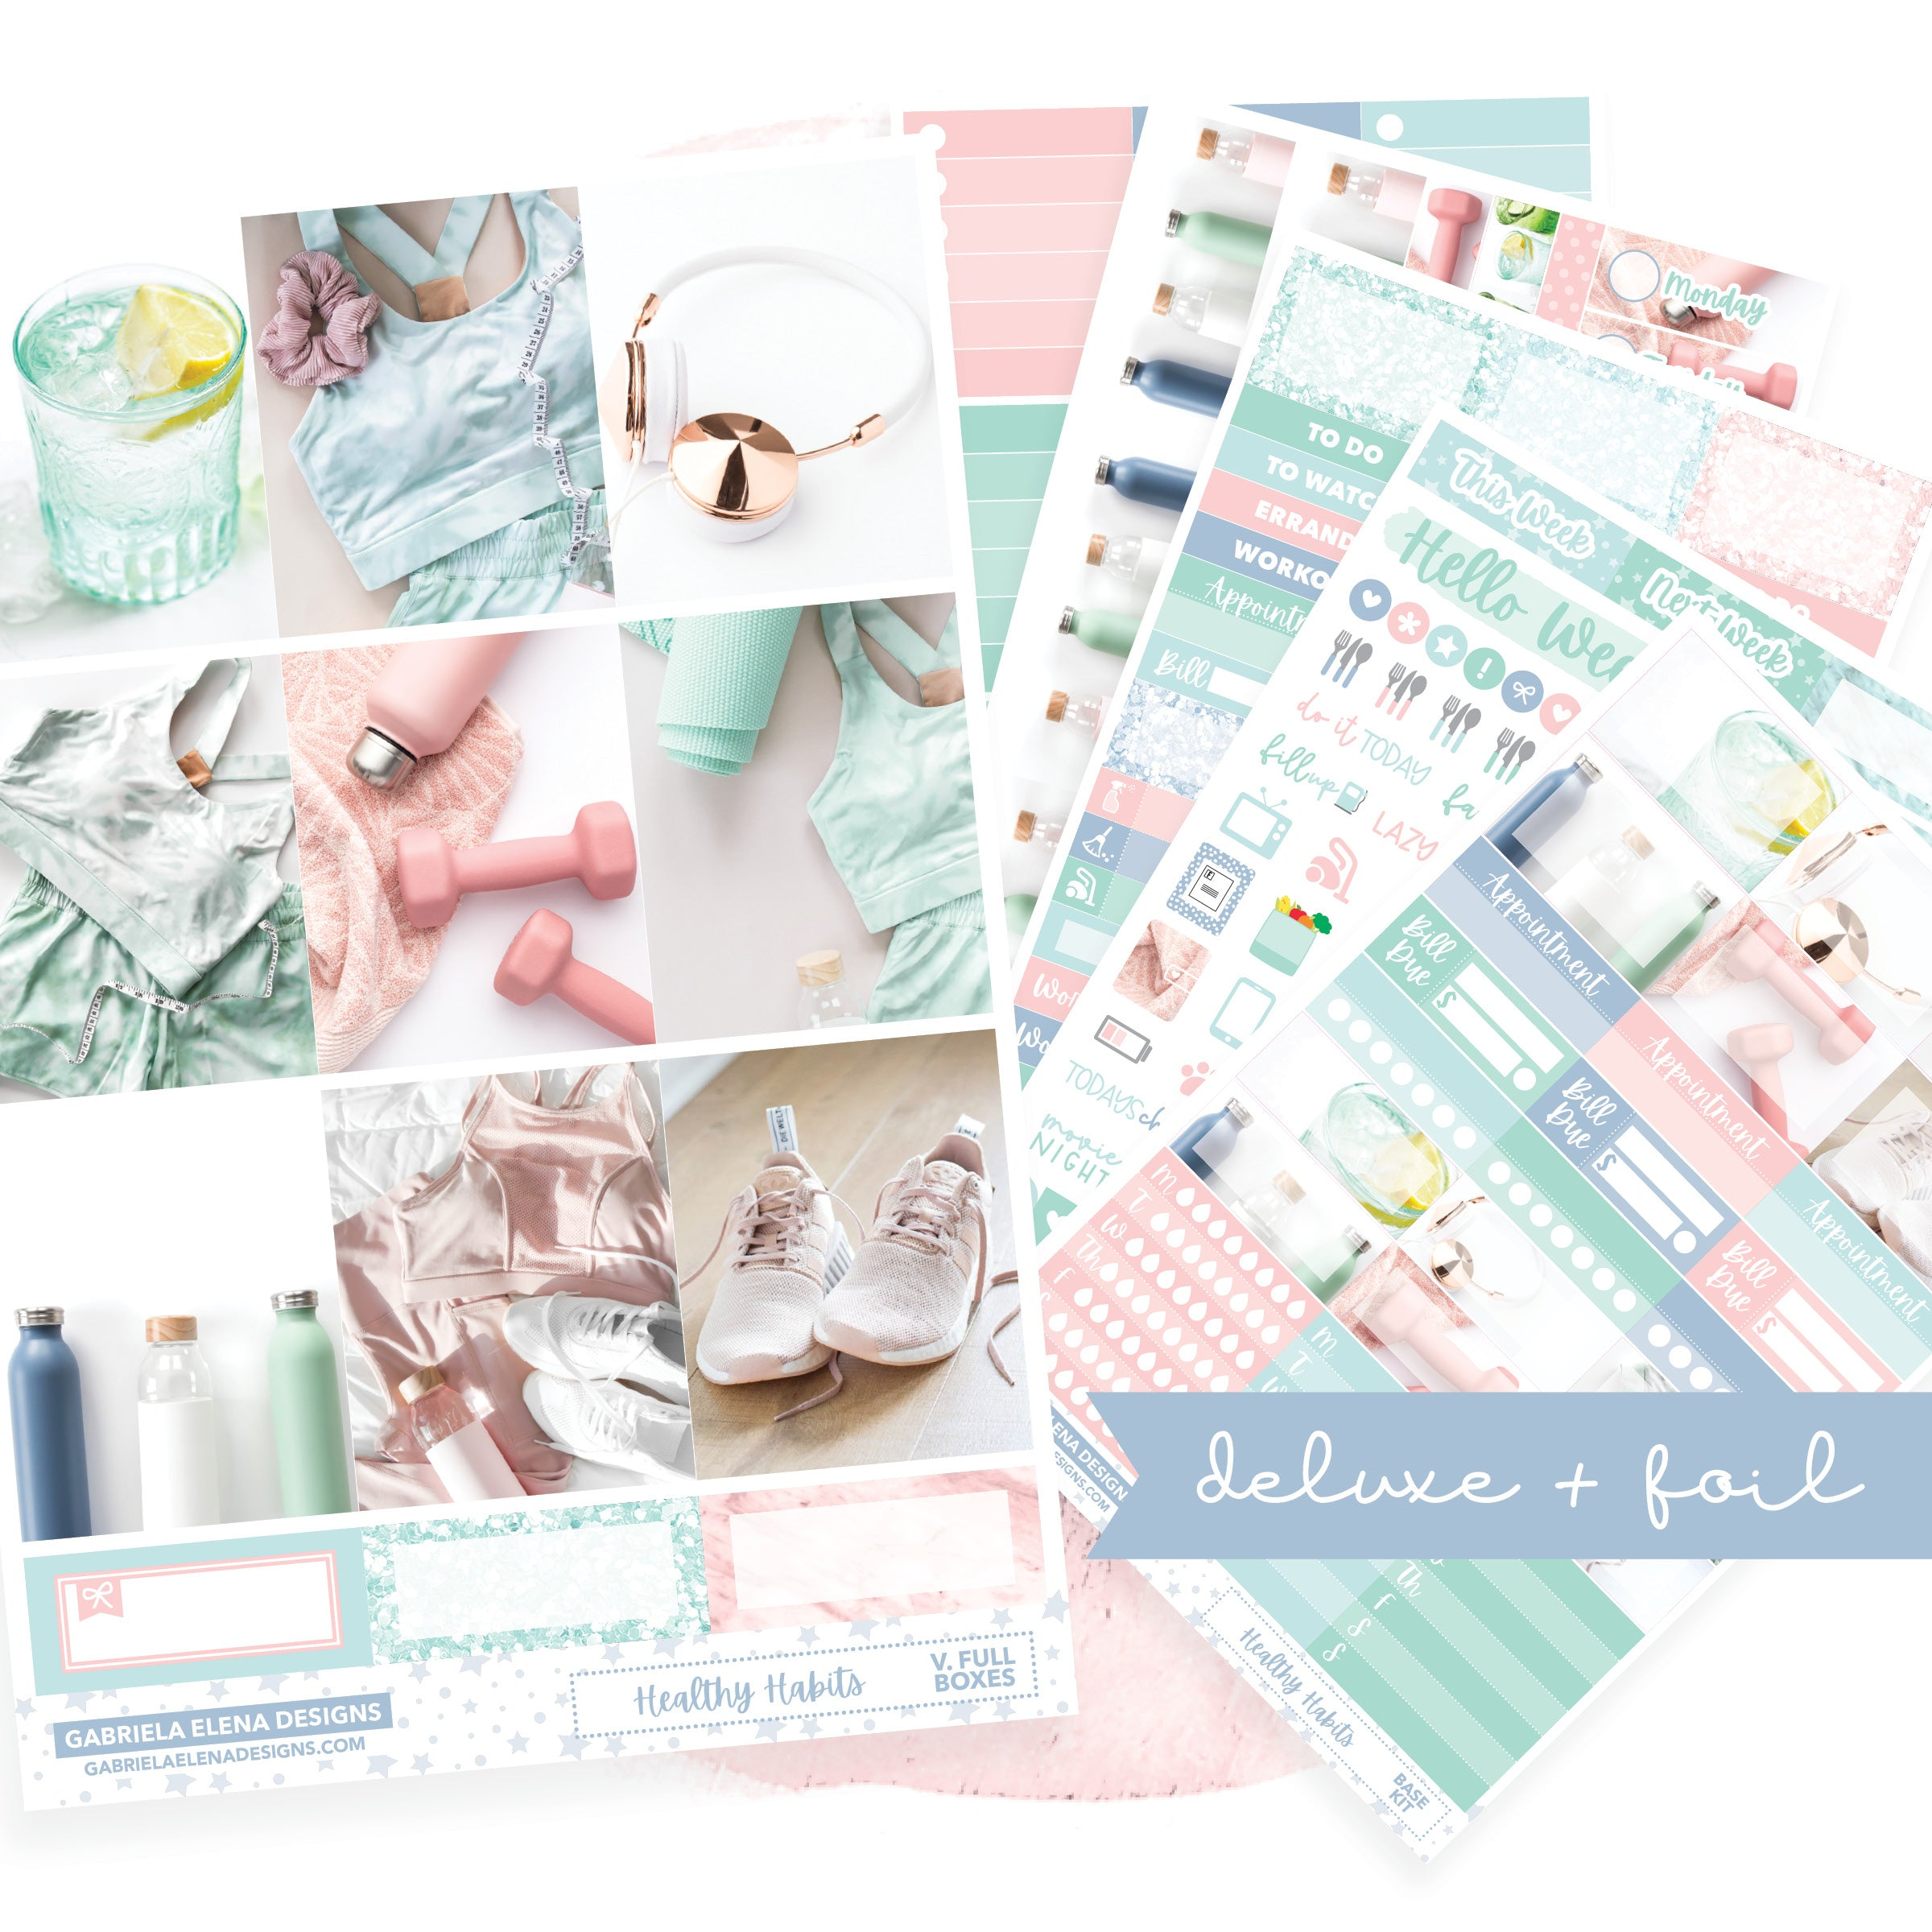 Healthy Habits / Photo Series // Deluxe VERTICAL // Sticker Kit // Full Weekly Kit / FOIL